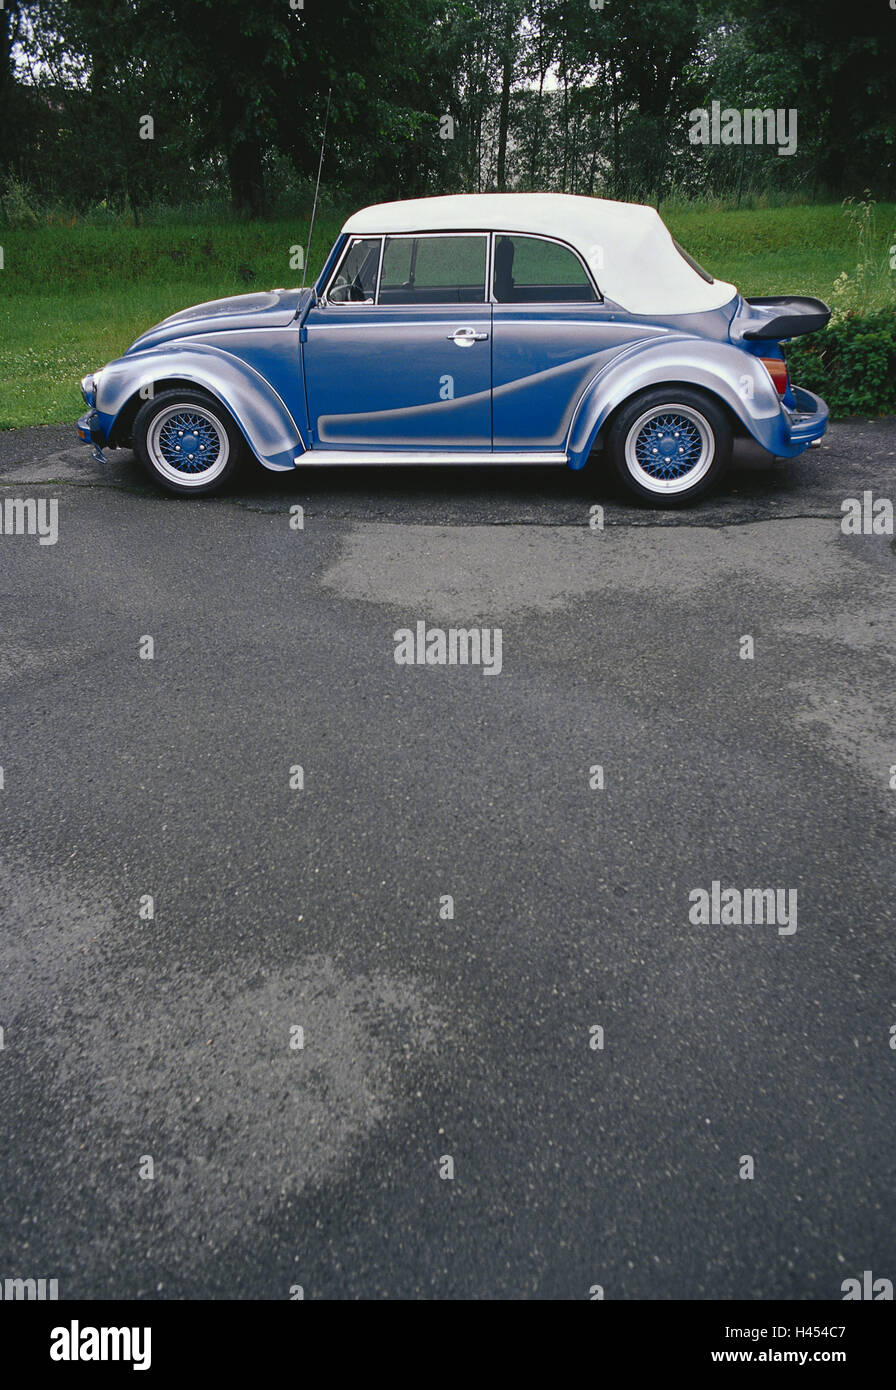 Car, VW BEETLE, type 1, convertible, spoiler, special spraying, preview, vehicle, car, cross spoke wheel rims, back - Stock Image